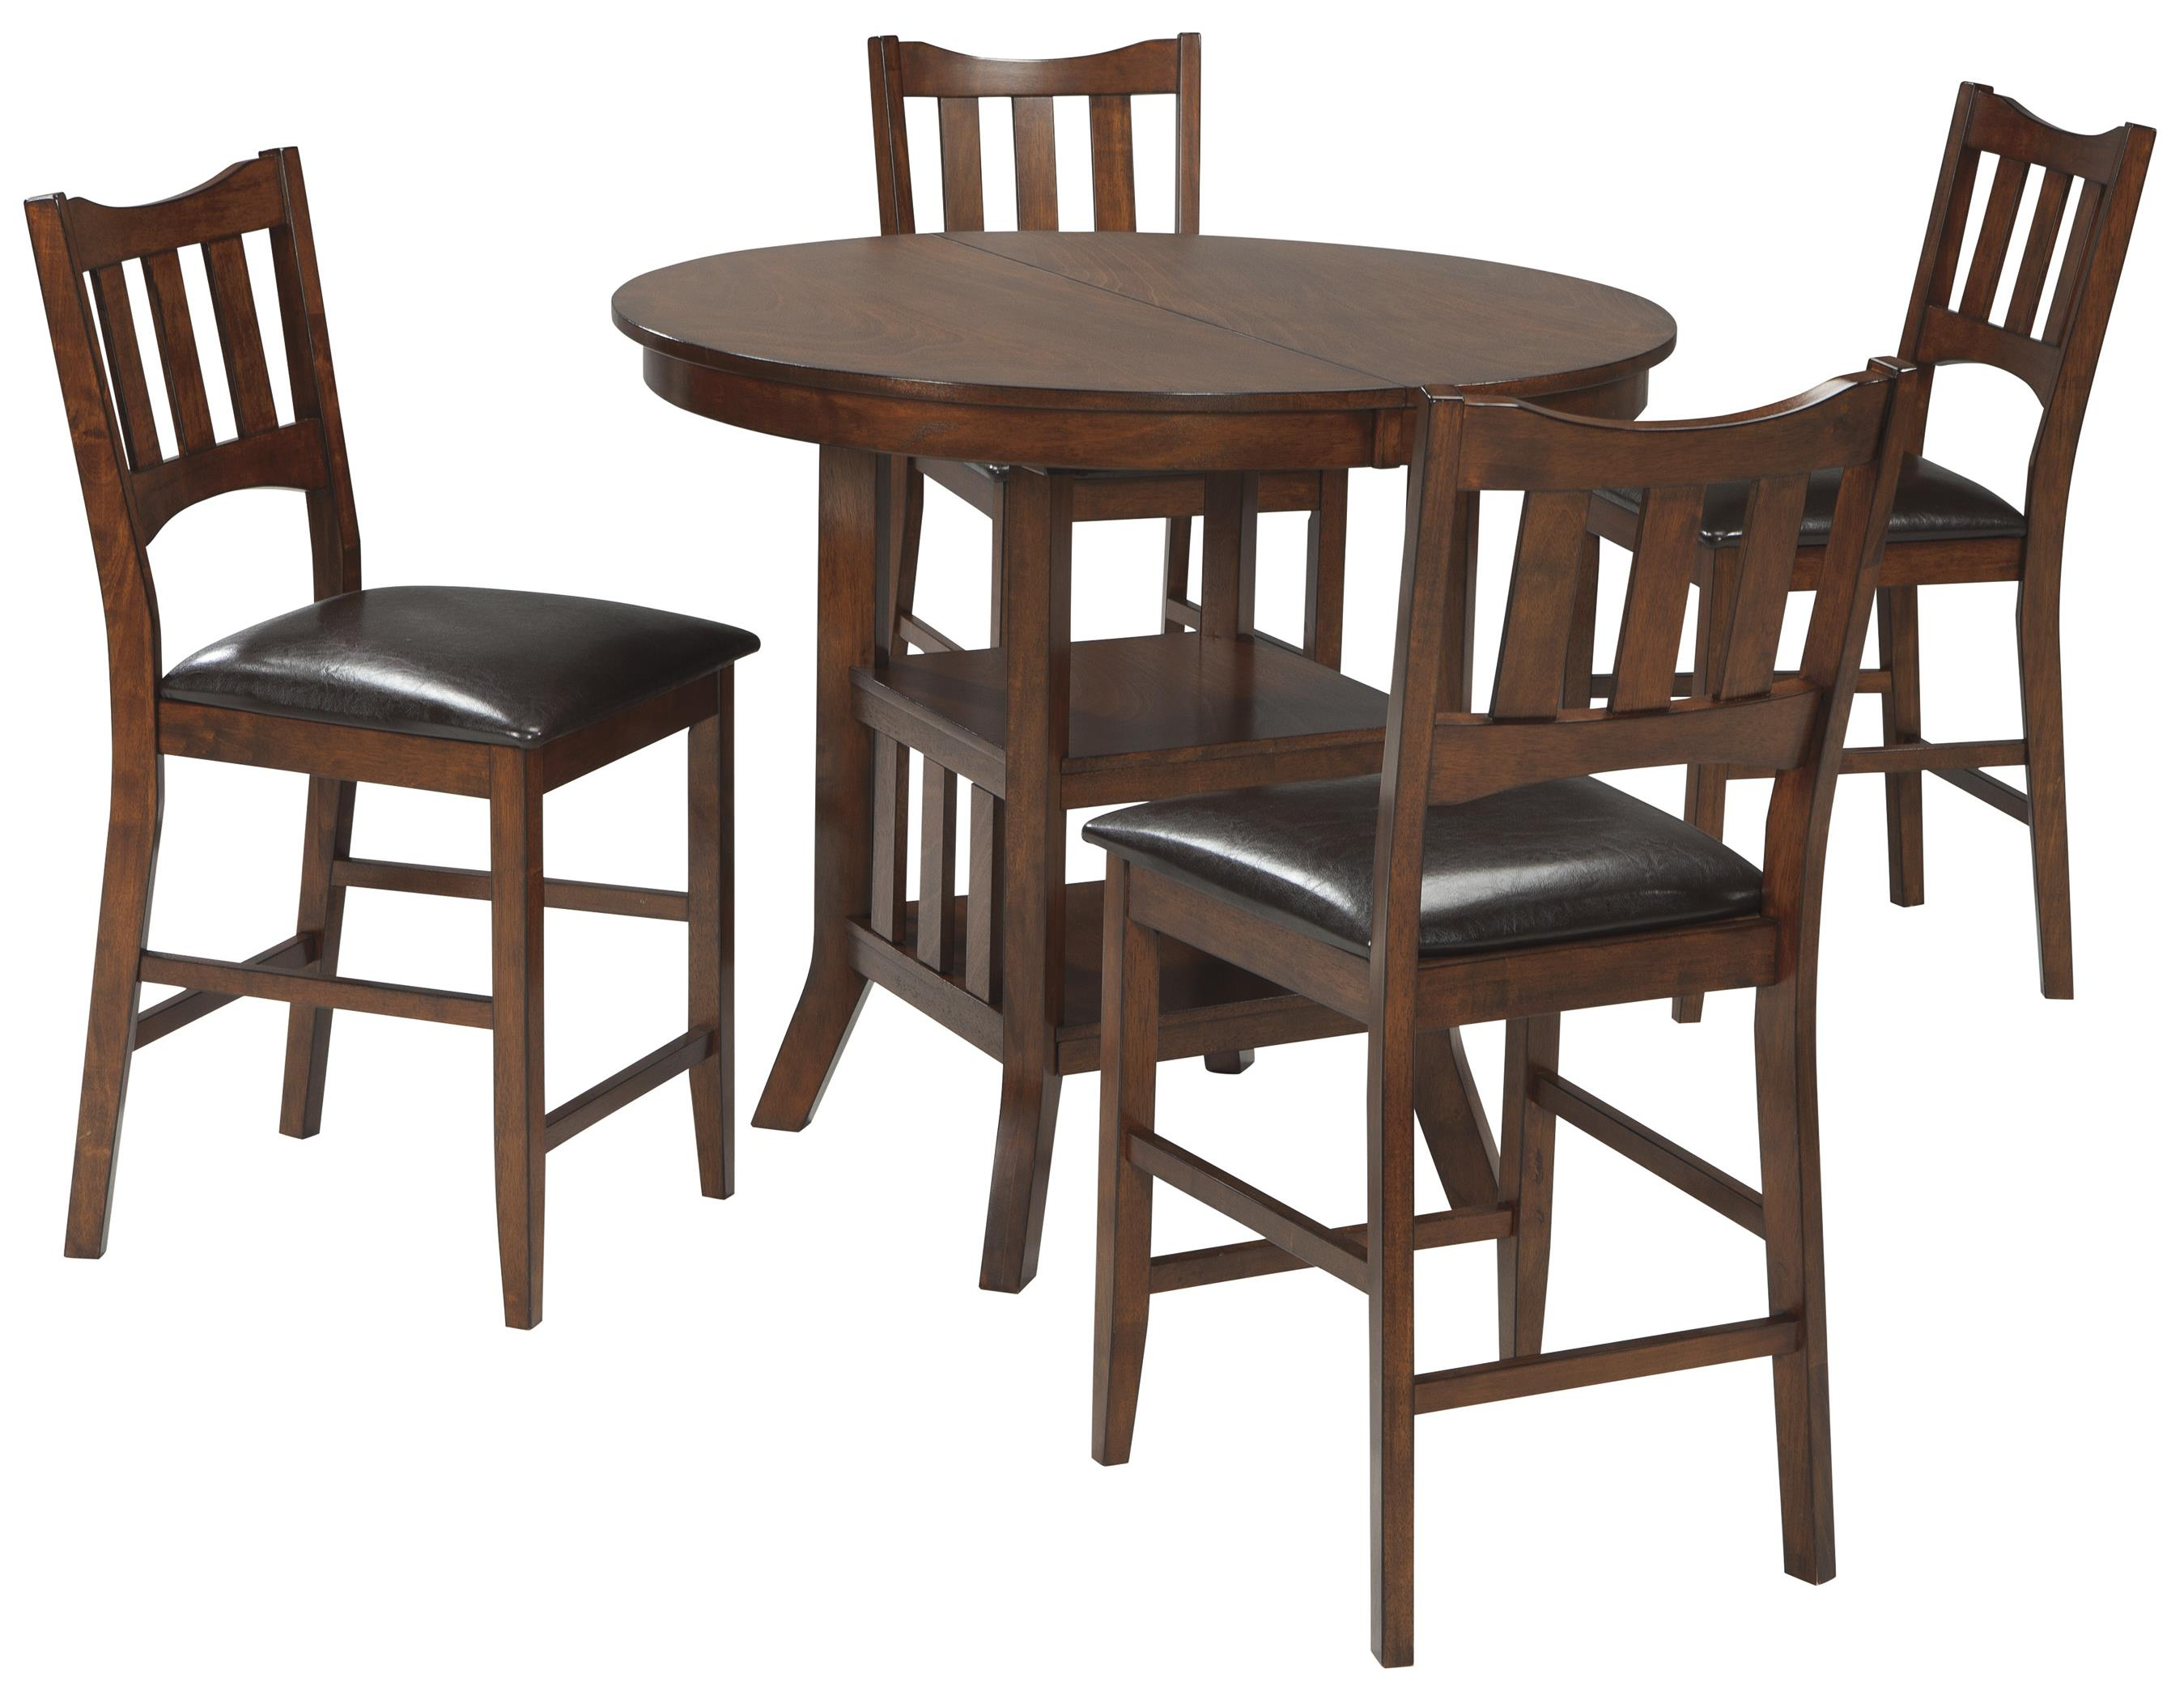 Signature Design by Ashley Renaburg 5-Piece Oval Counter Extension Table Set - Item Number: D574-42+4x124